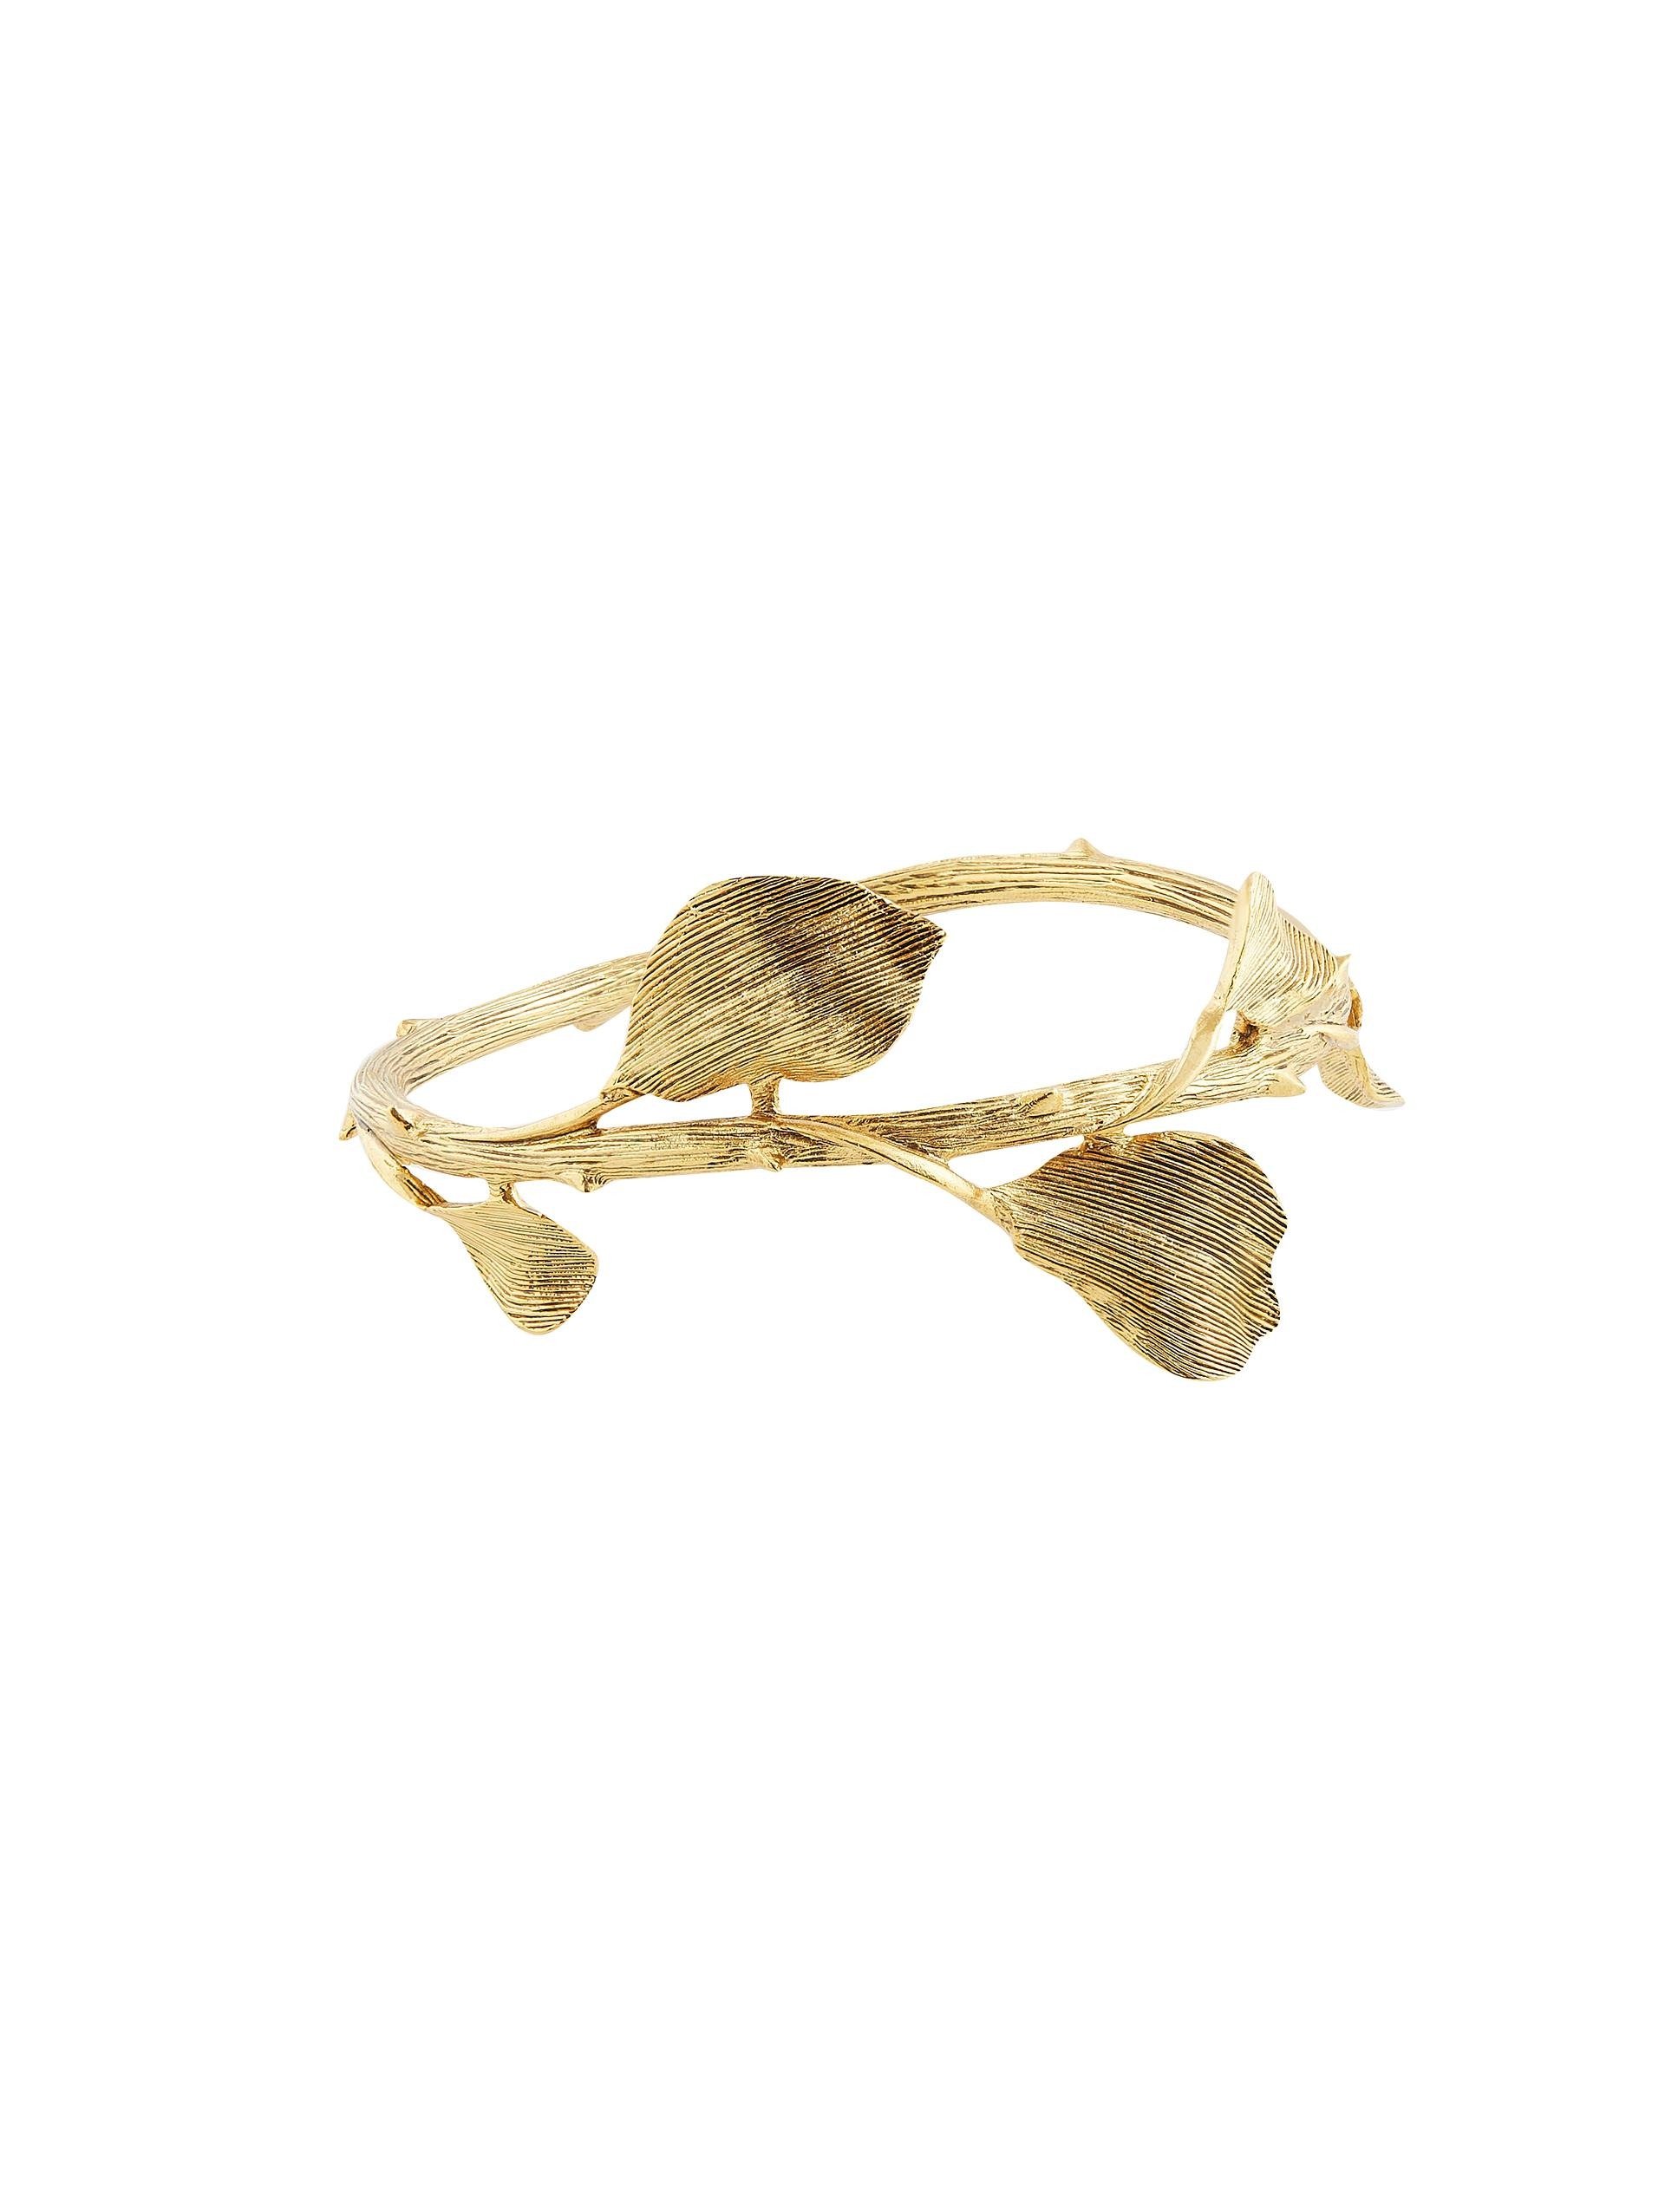 THORN AND BRANCH BRACELET